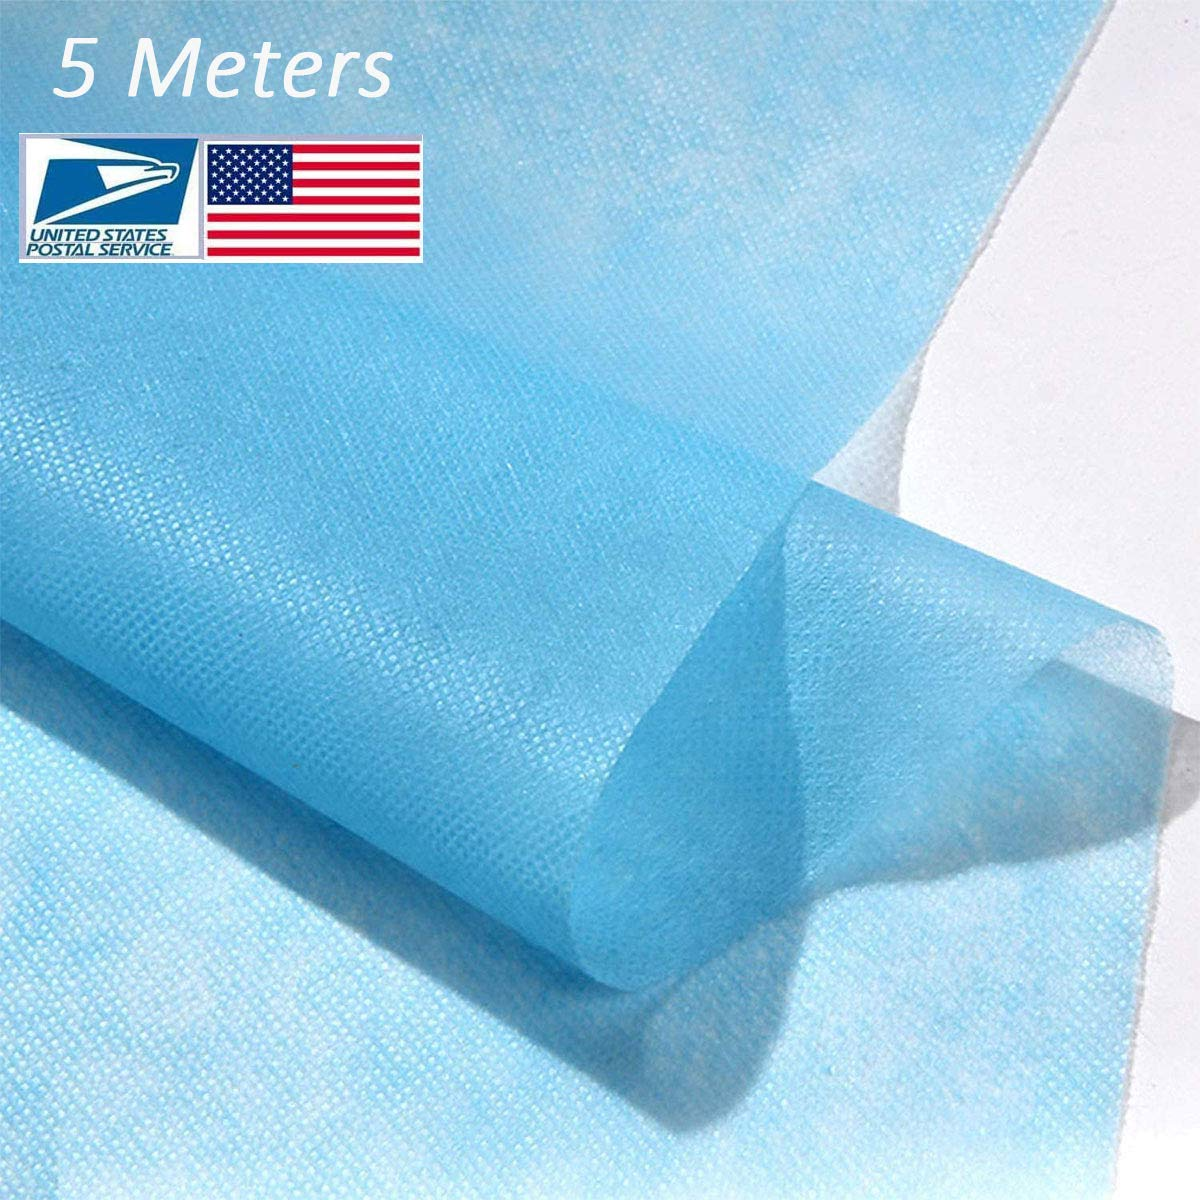 Disposable Waterproof Non-Woven Fabric Cloth,95% Polypropylene Fabric,DIY Handmade Material,Waterproof and Breathable Skin-Friendly and Soft (5M)